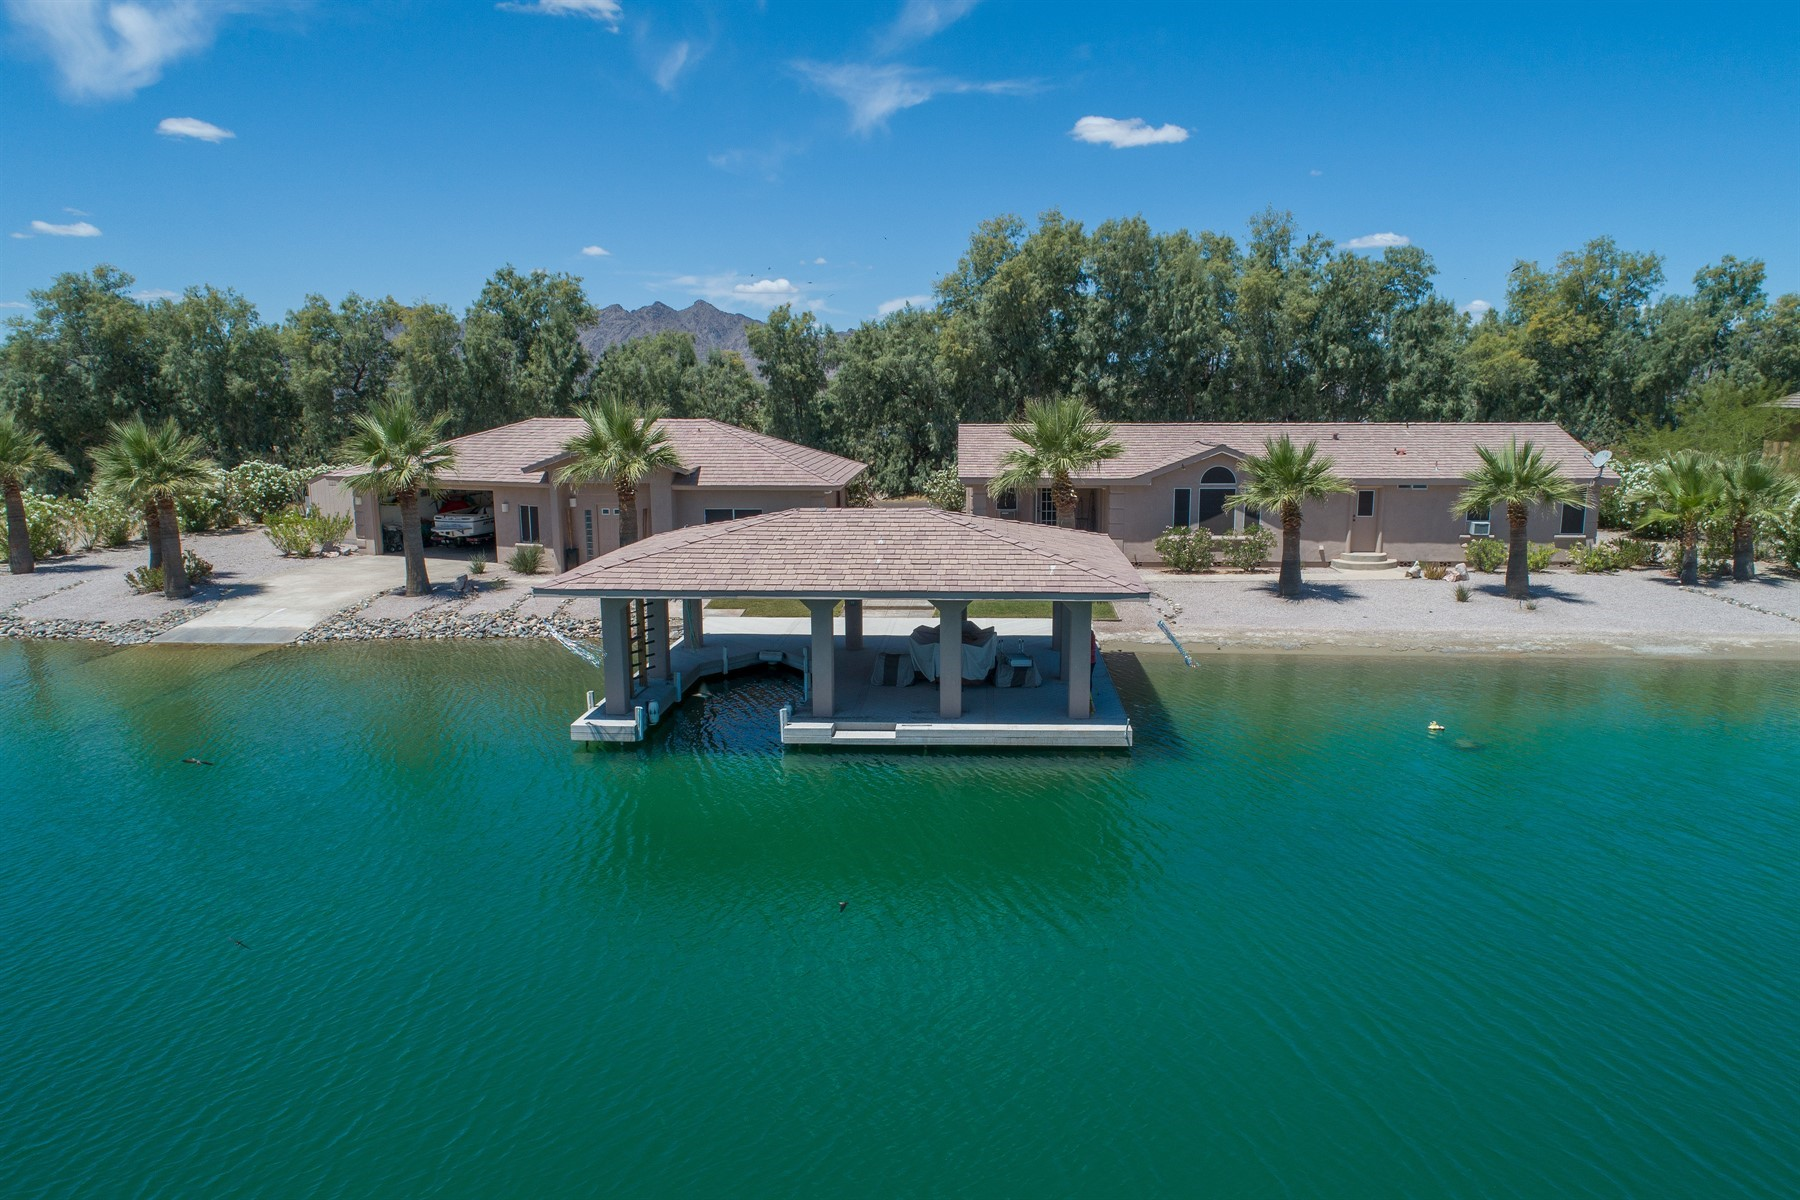 Other Residential Homes for Active at Lakeside Ski Village 36444 S US HIGHWAY 85 -- 10 Buckeye, Arizona 85326 United States